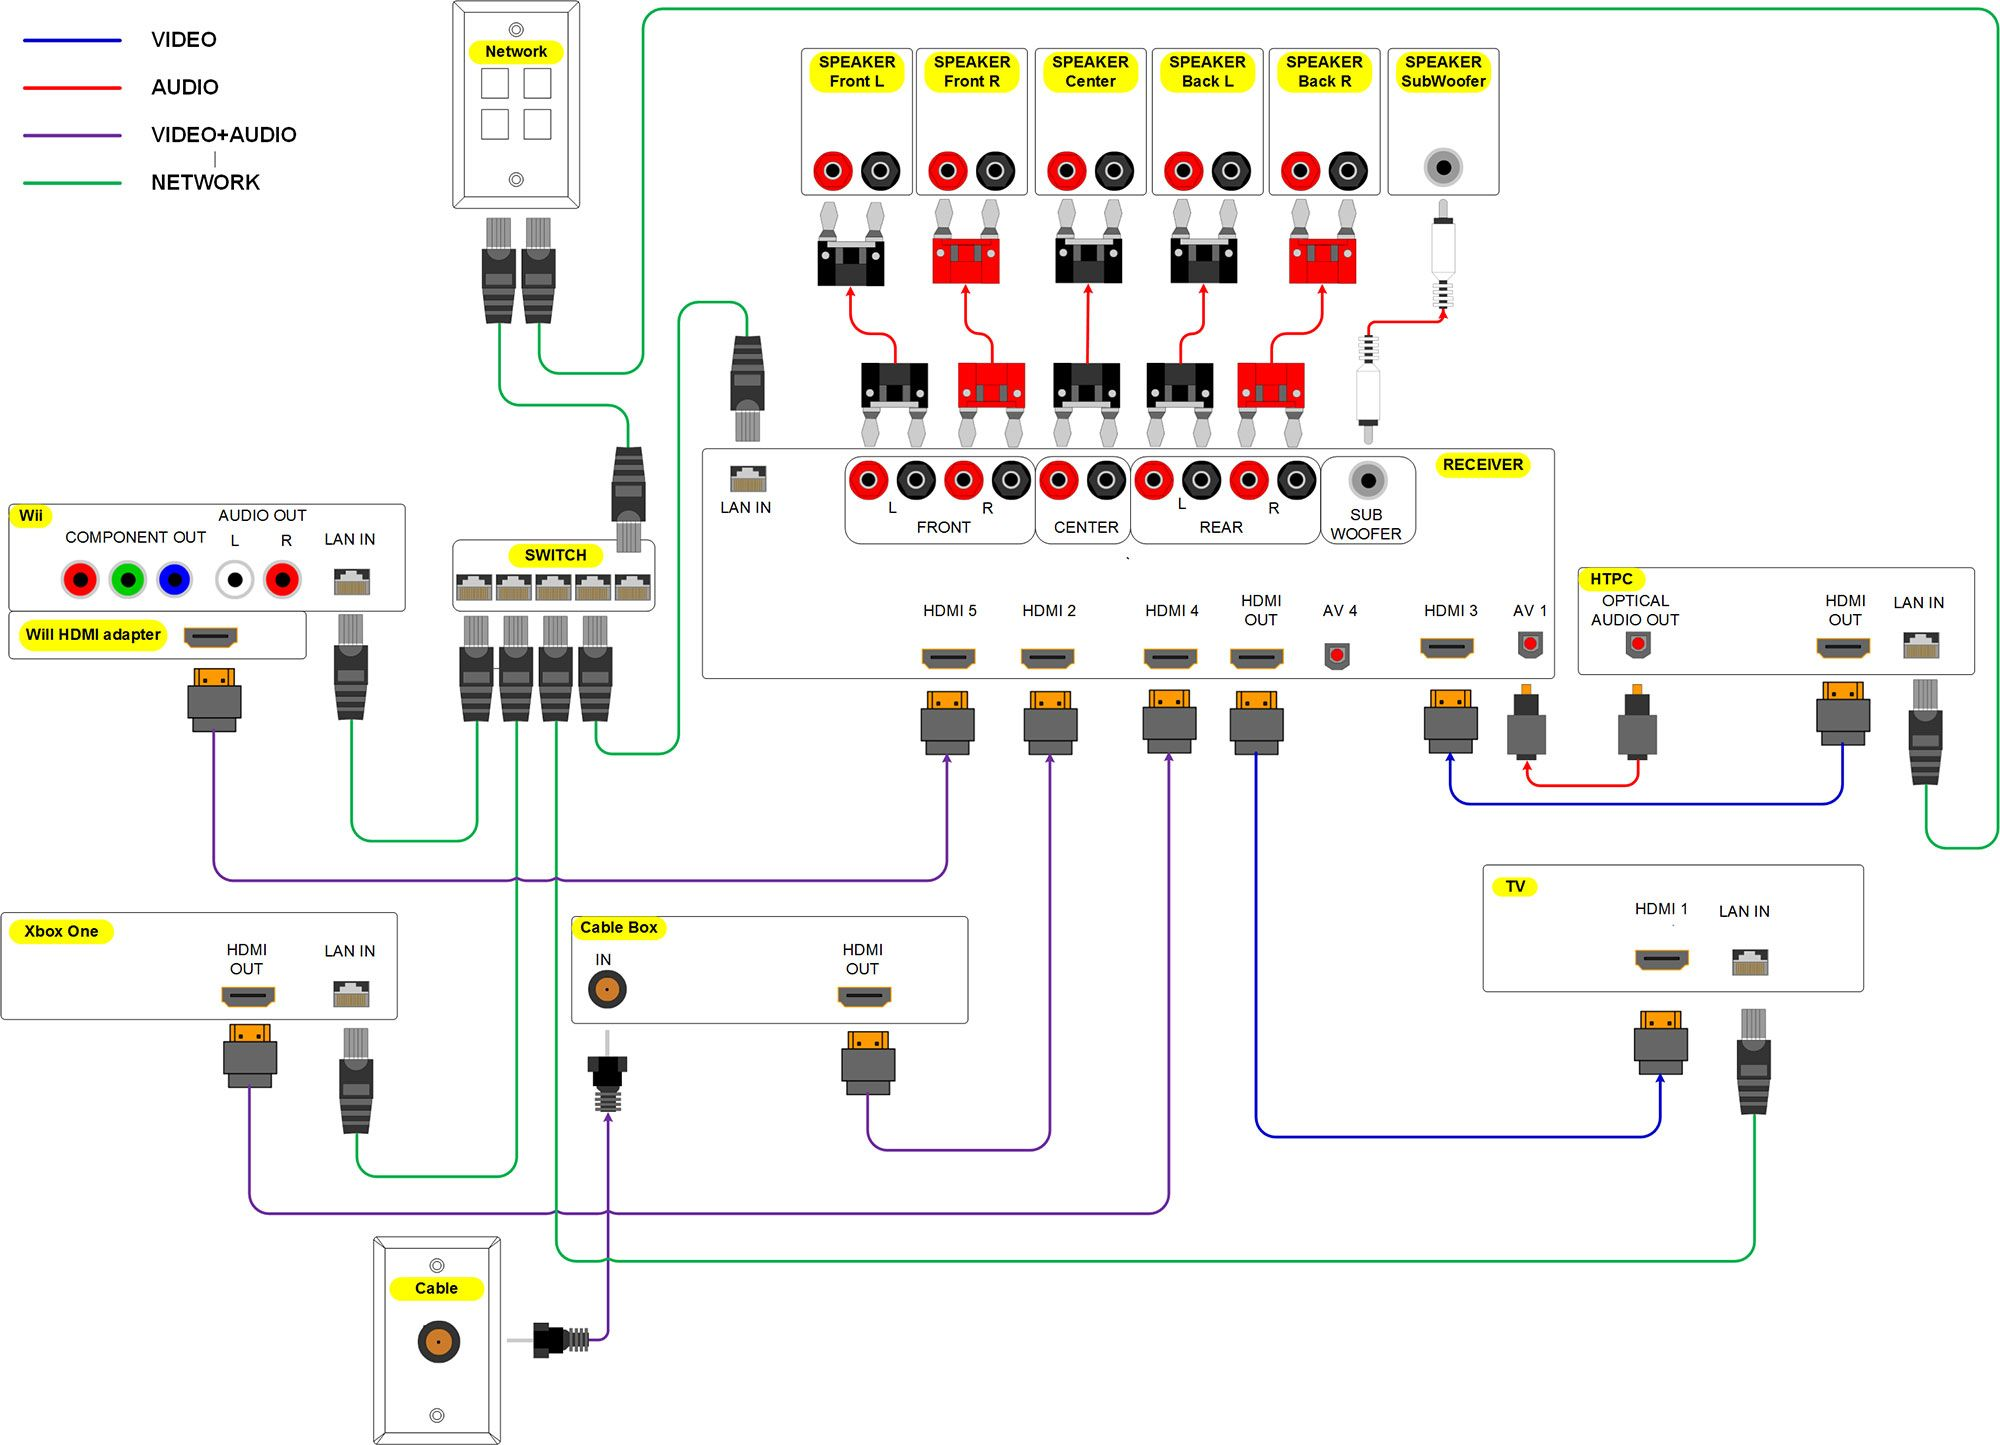 Home cable wiring basics home theater subwoofer wiring diagram h i g h f i d e l i t y asfbconference2016 Image collections